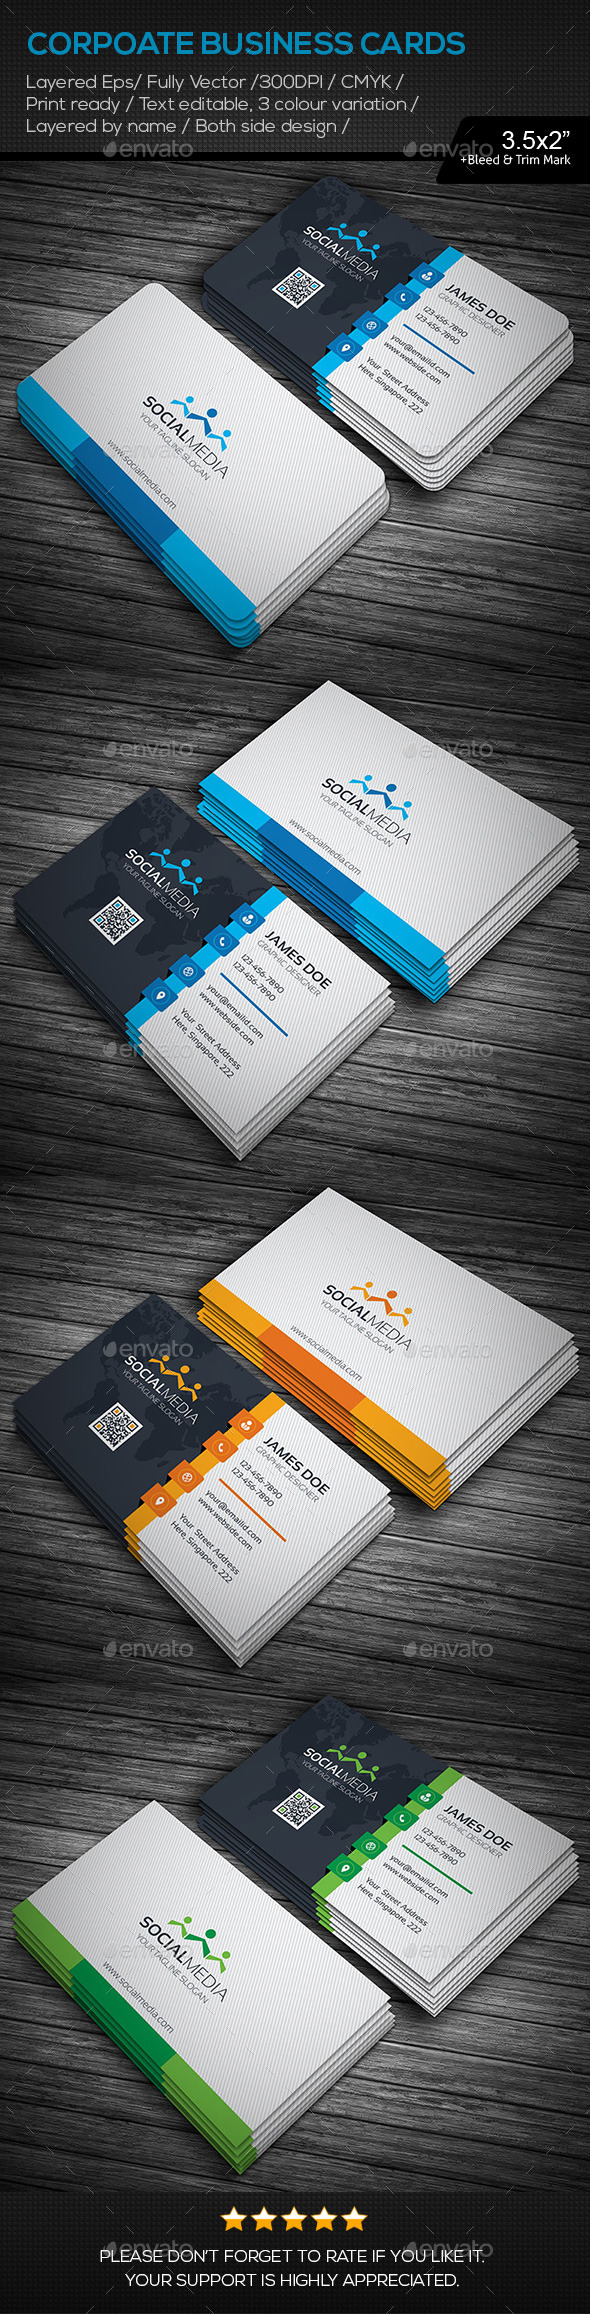 GraphicRiver Social Media Corporate Business Cards 11195378